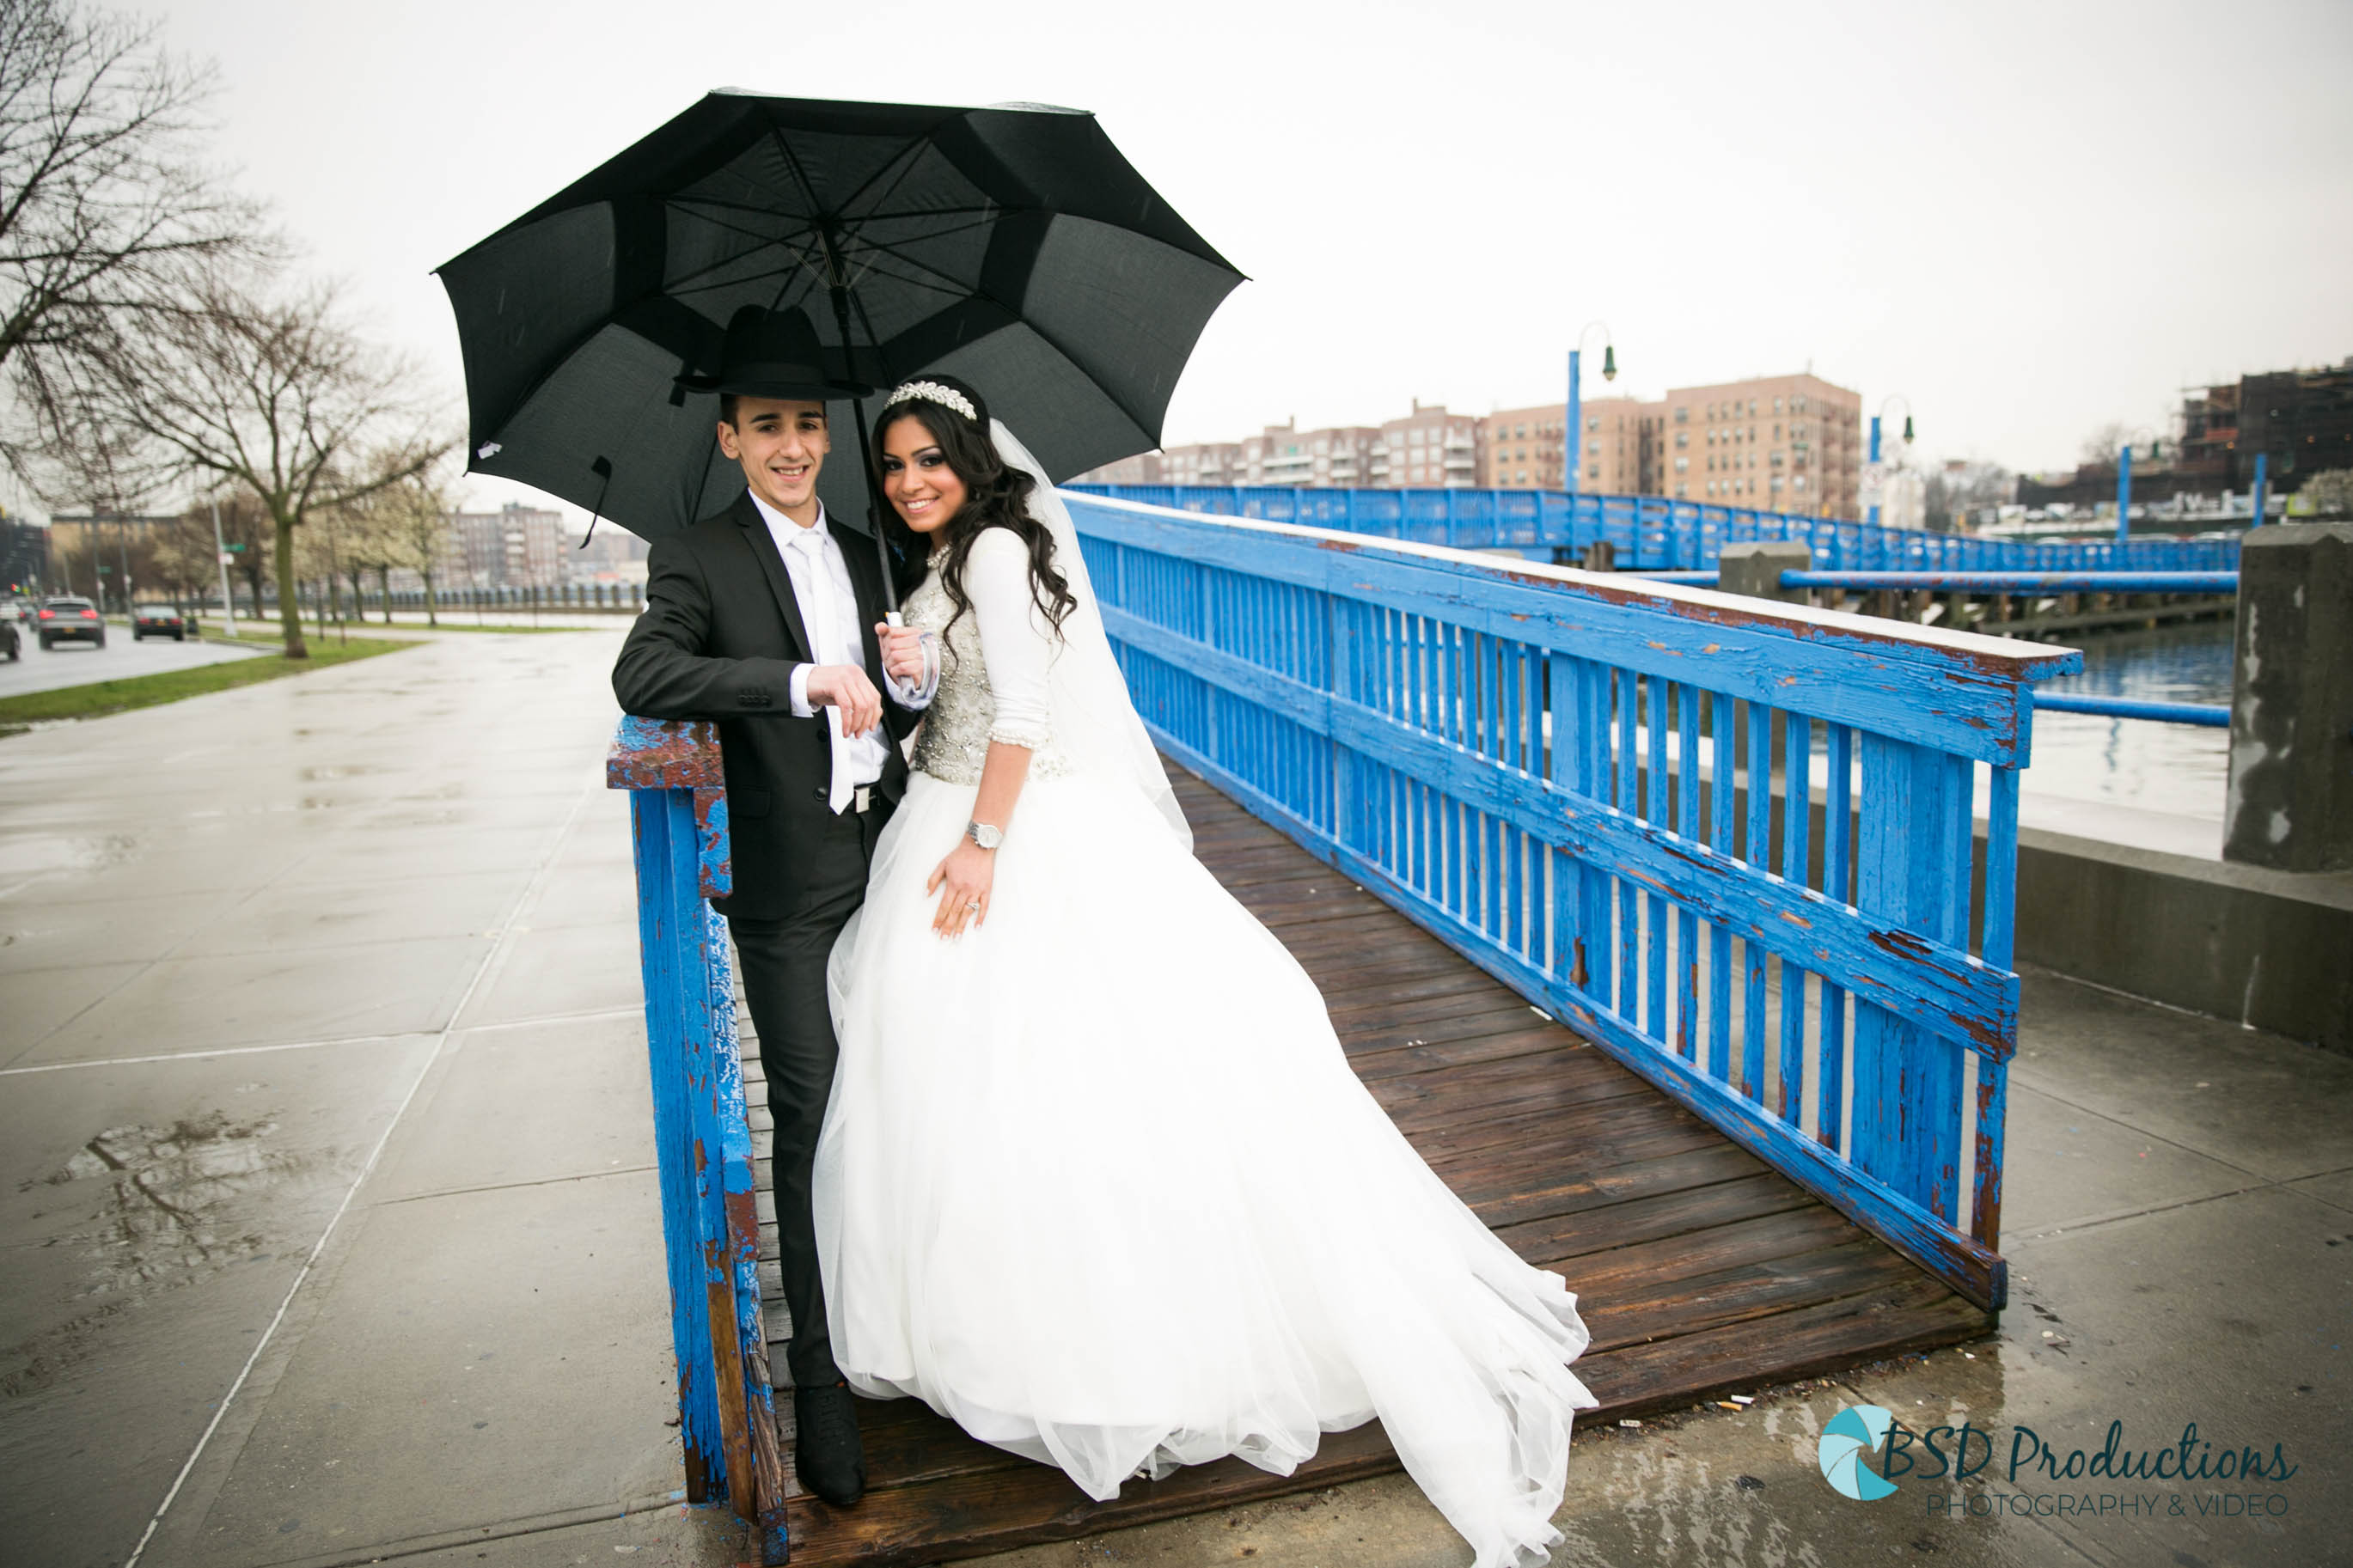 UH5A8755 Wedding – BSD Productions Photography